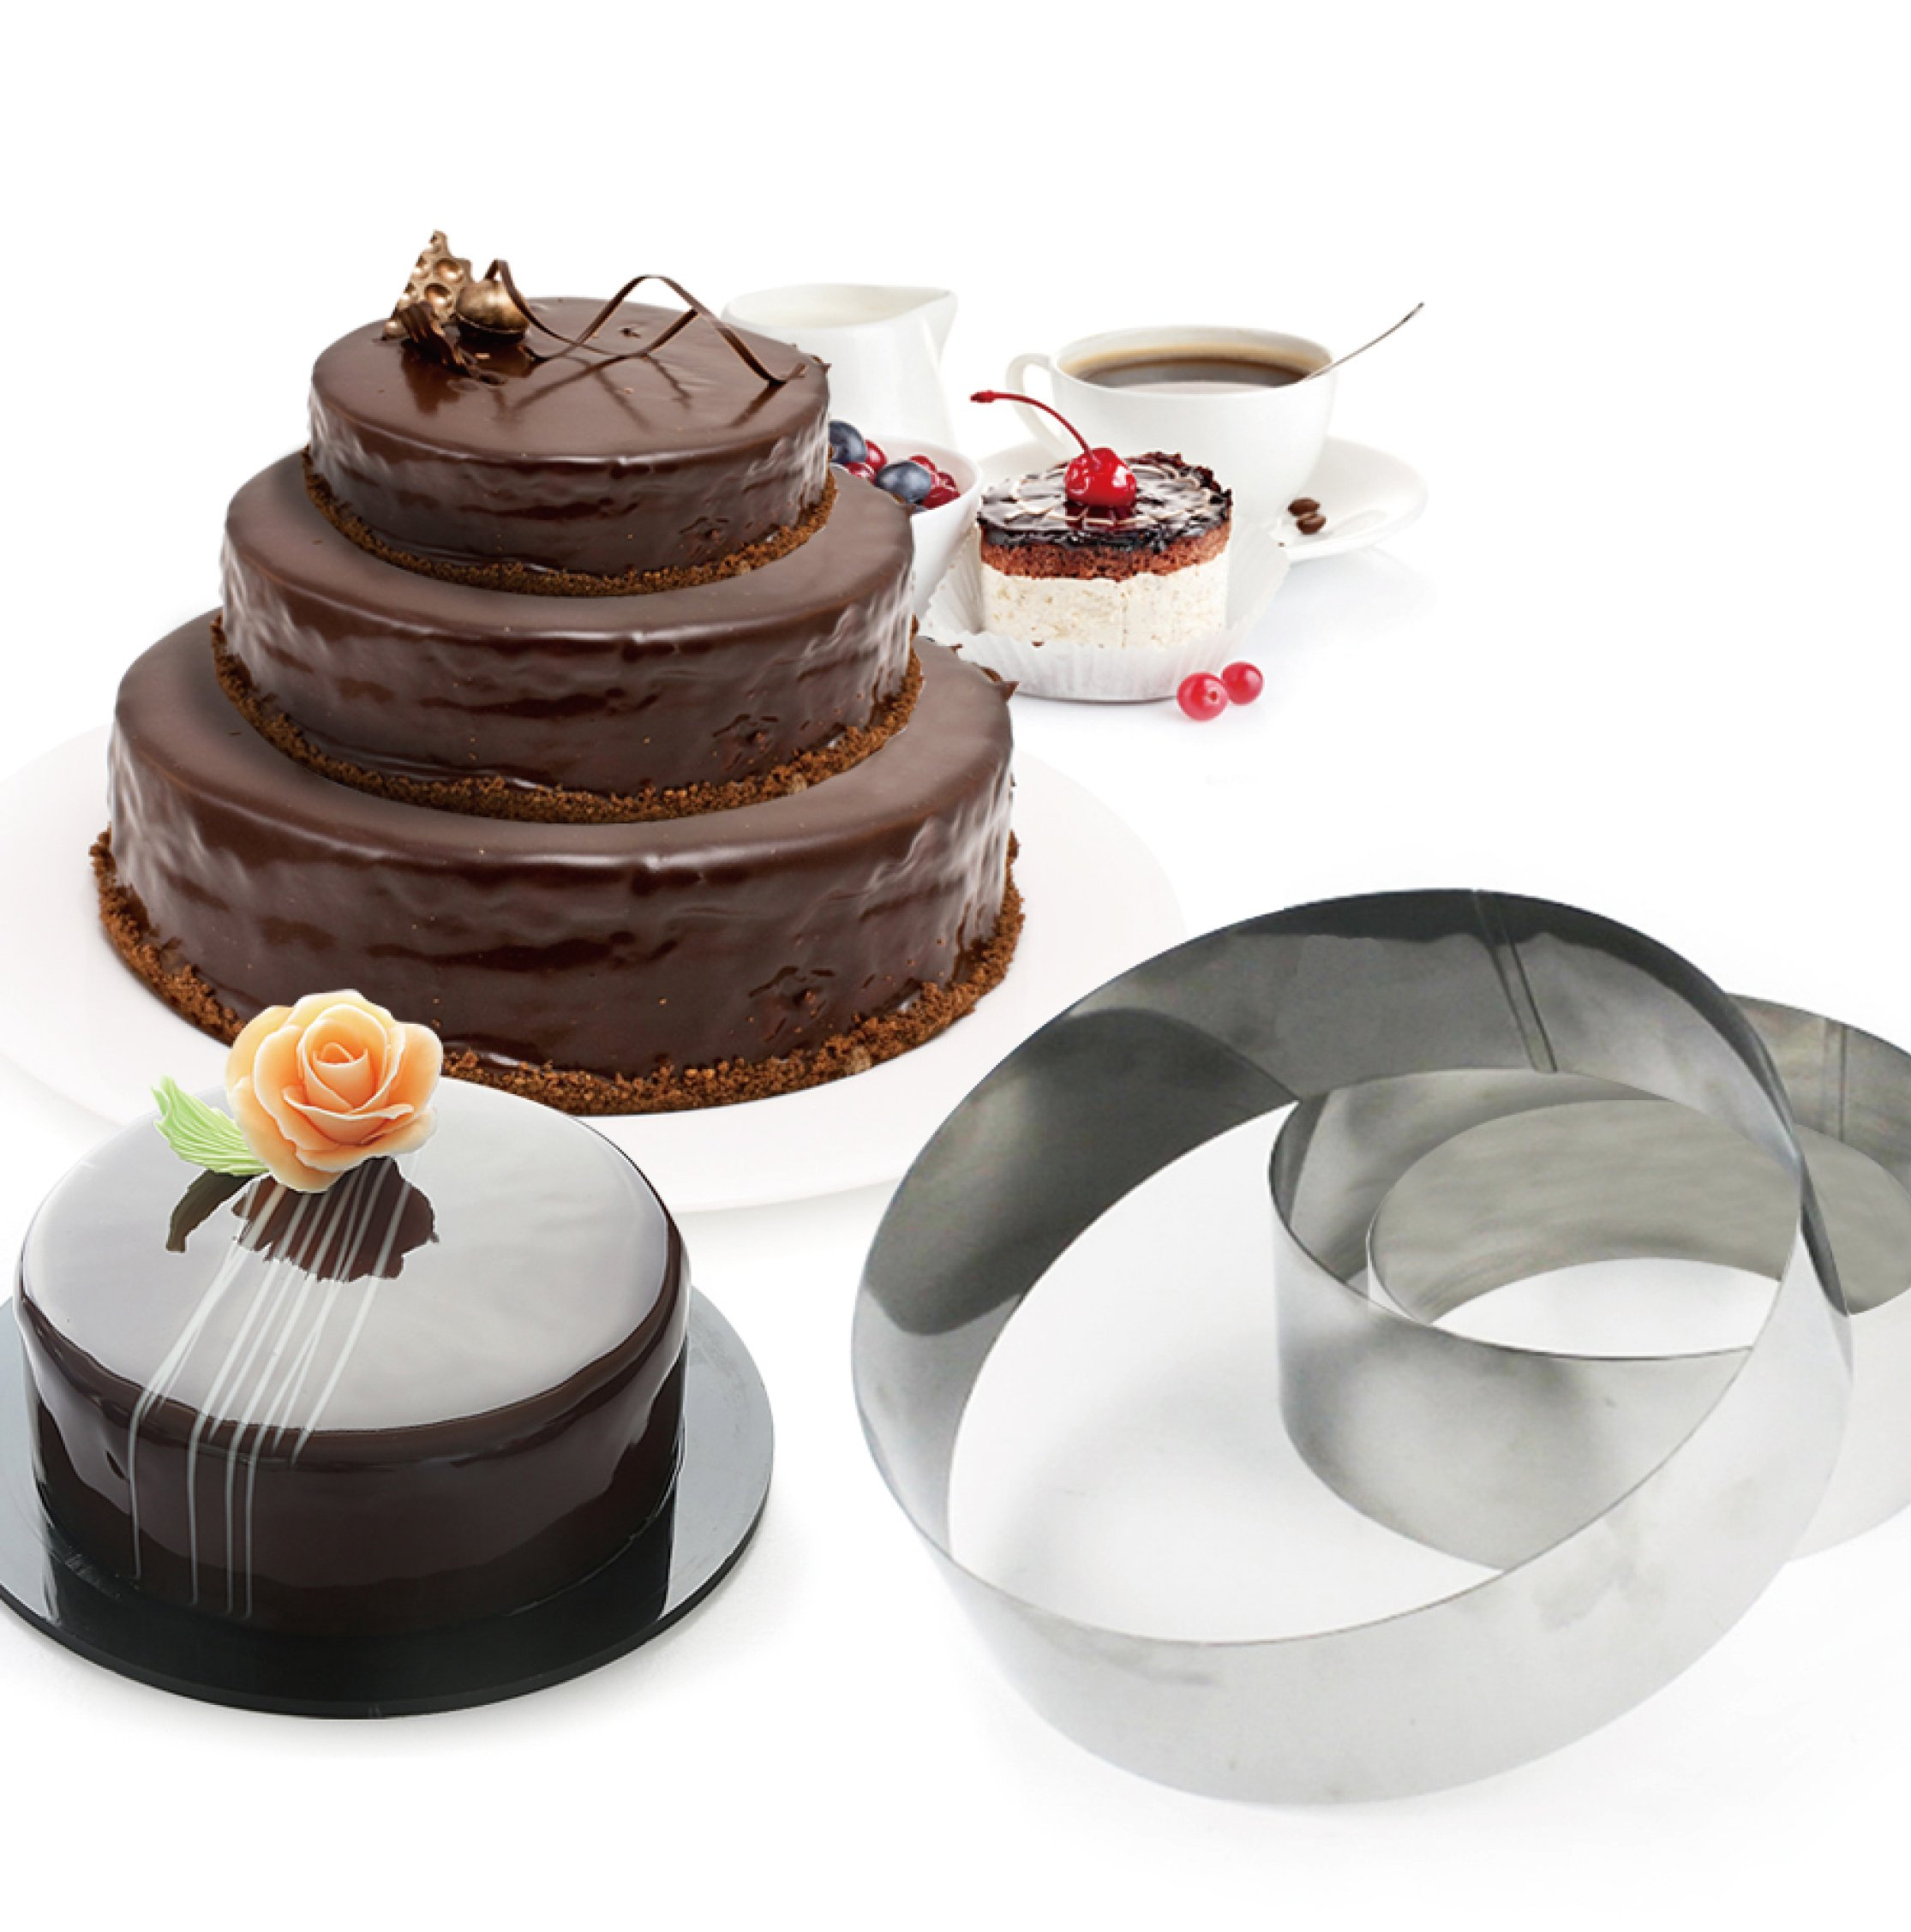 3 Tier Round Multilayer Anniversary Birthday Cake Baking Pans,Stainless Steel 3 Sizes Rings Round Molding Mousse Cake Rings(Round-shape,Set of 3) by FunWhale